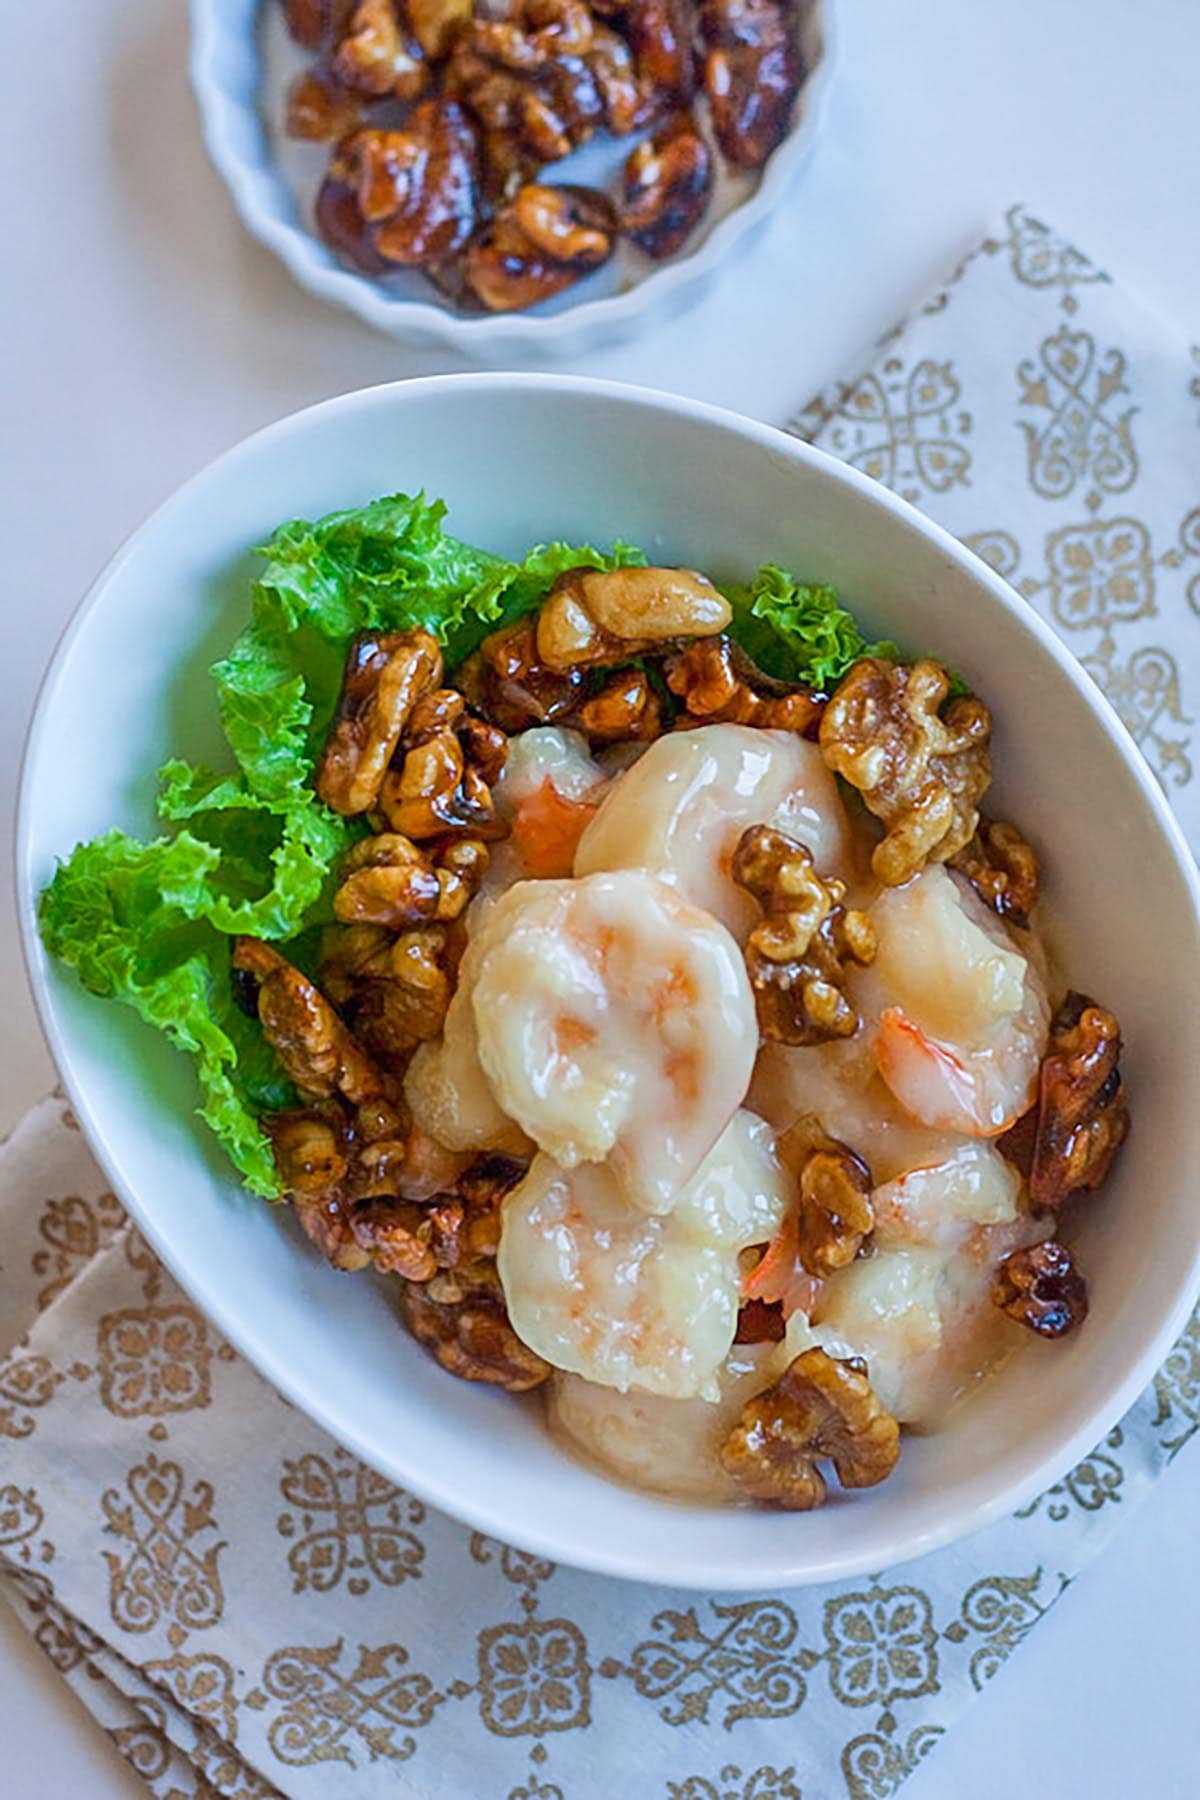 Honey walnut shrimp in a white bowl, with candied walnuts, ready to be served.